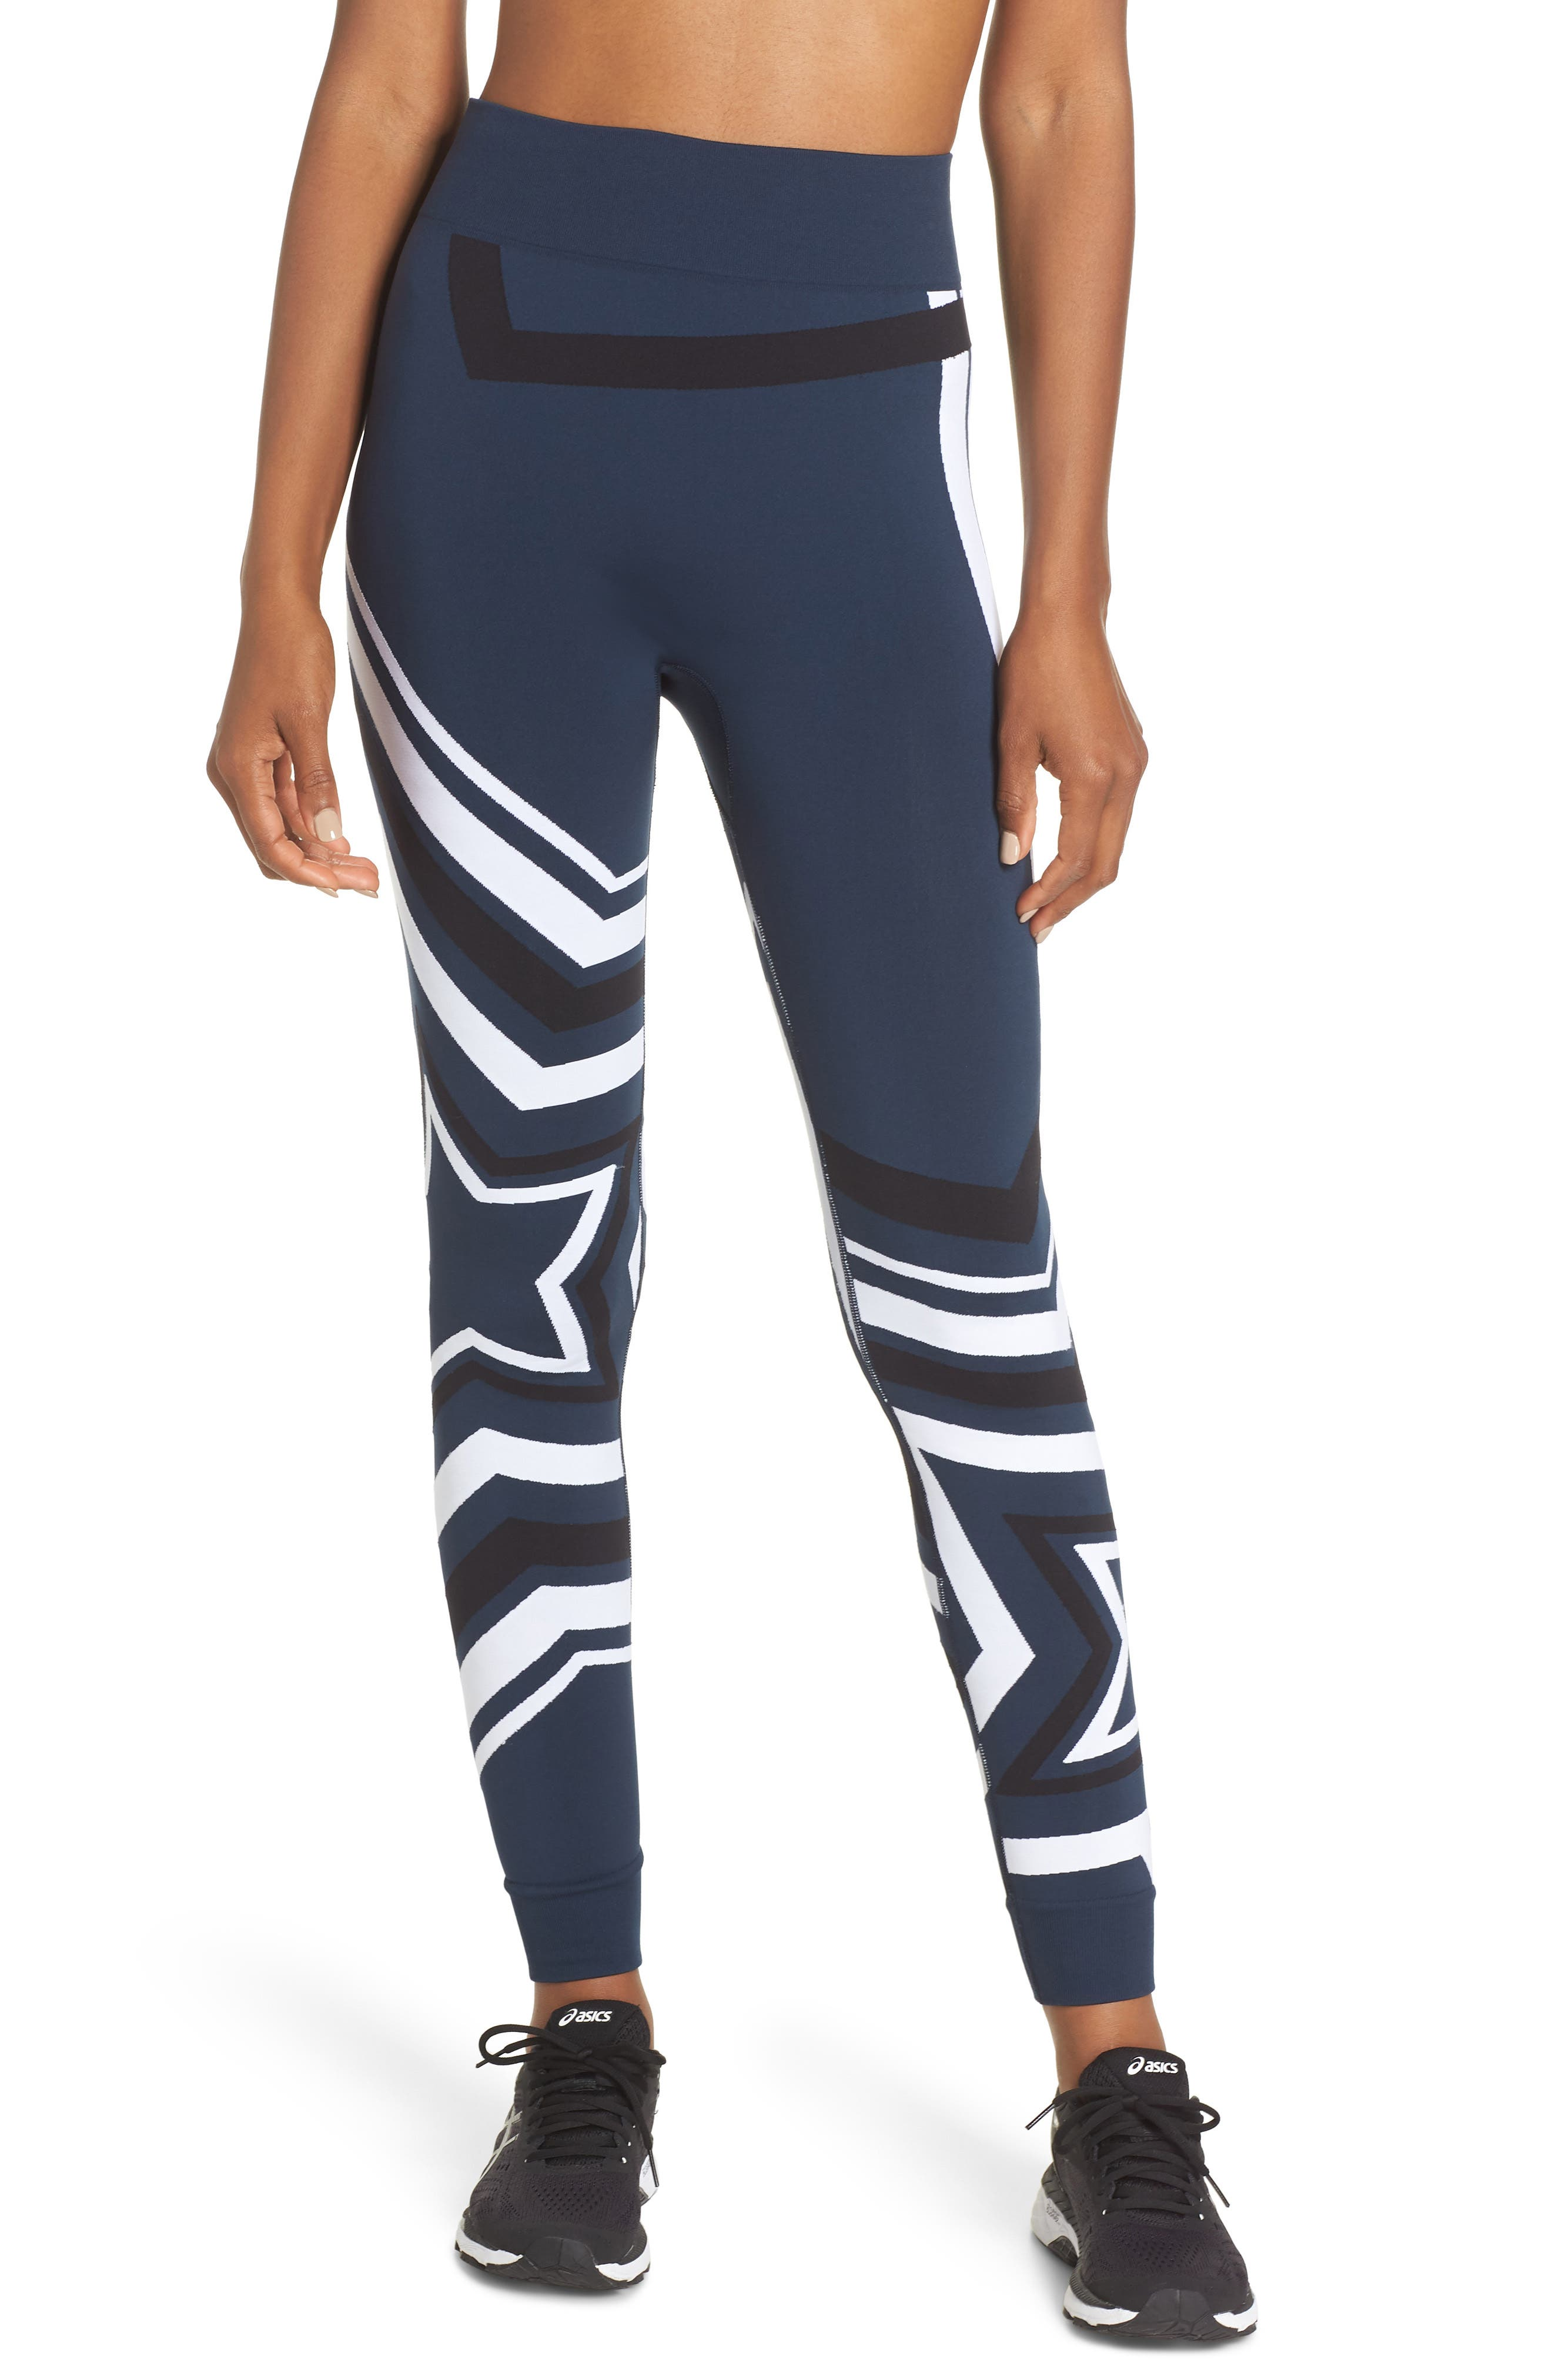 Star Graphic Seamless Leggings,                             Main thumbnail 1, color,                             BEETLE BLUE STAR JACQUARD